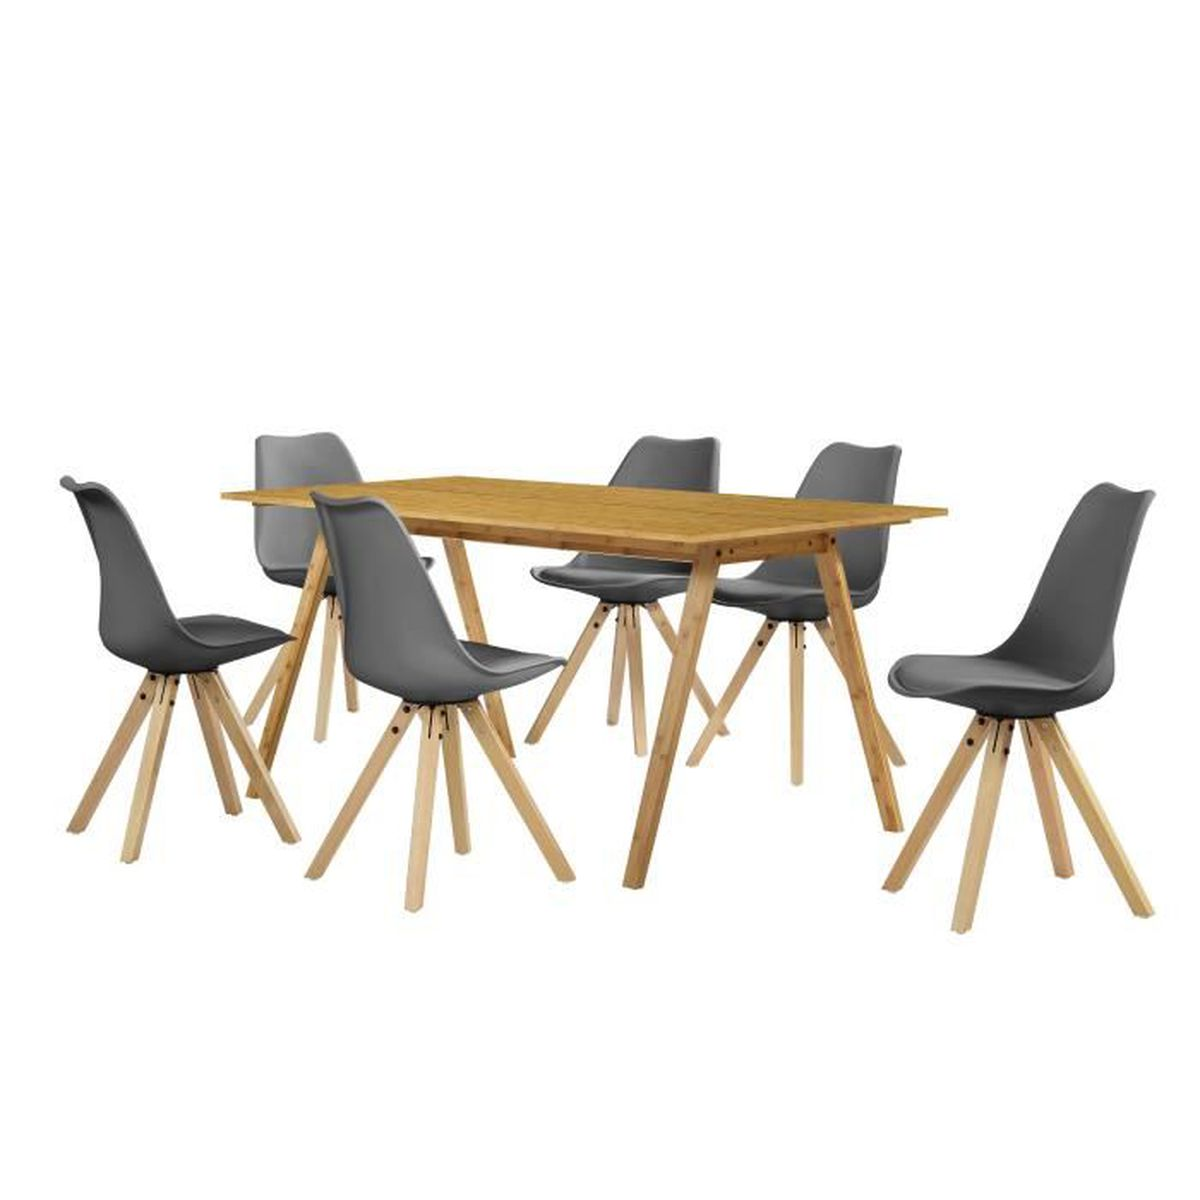 Table manger bambou avec 6 chaises gris for Table a manger 6 chaises